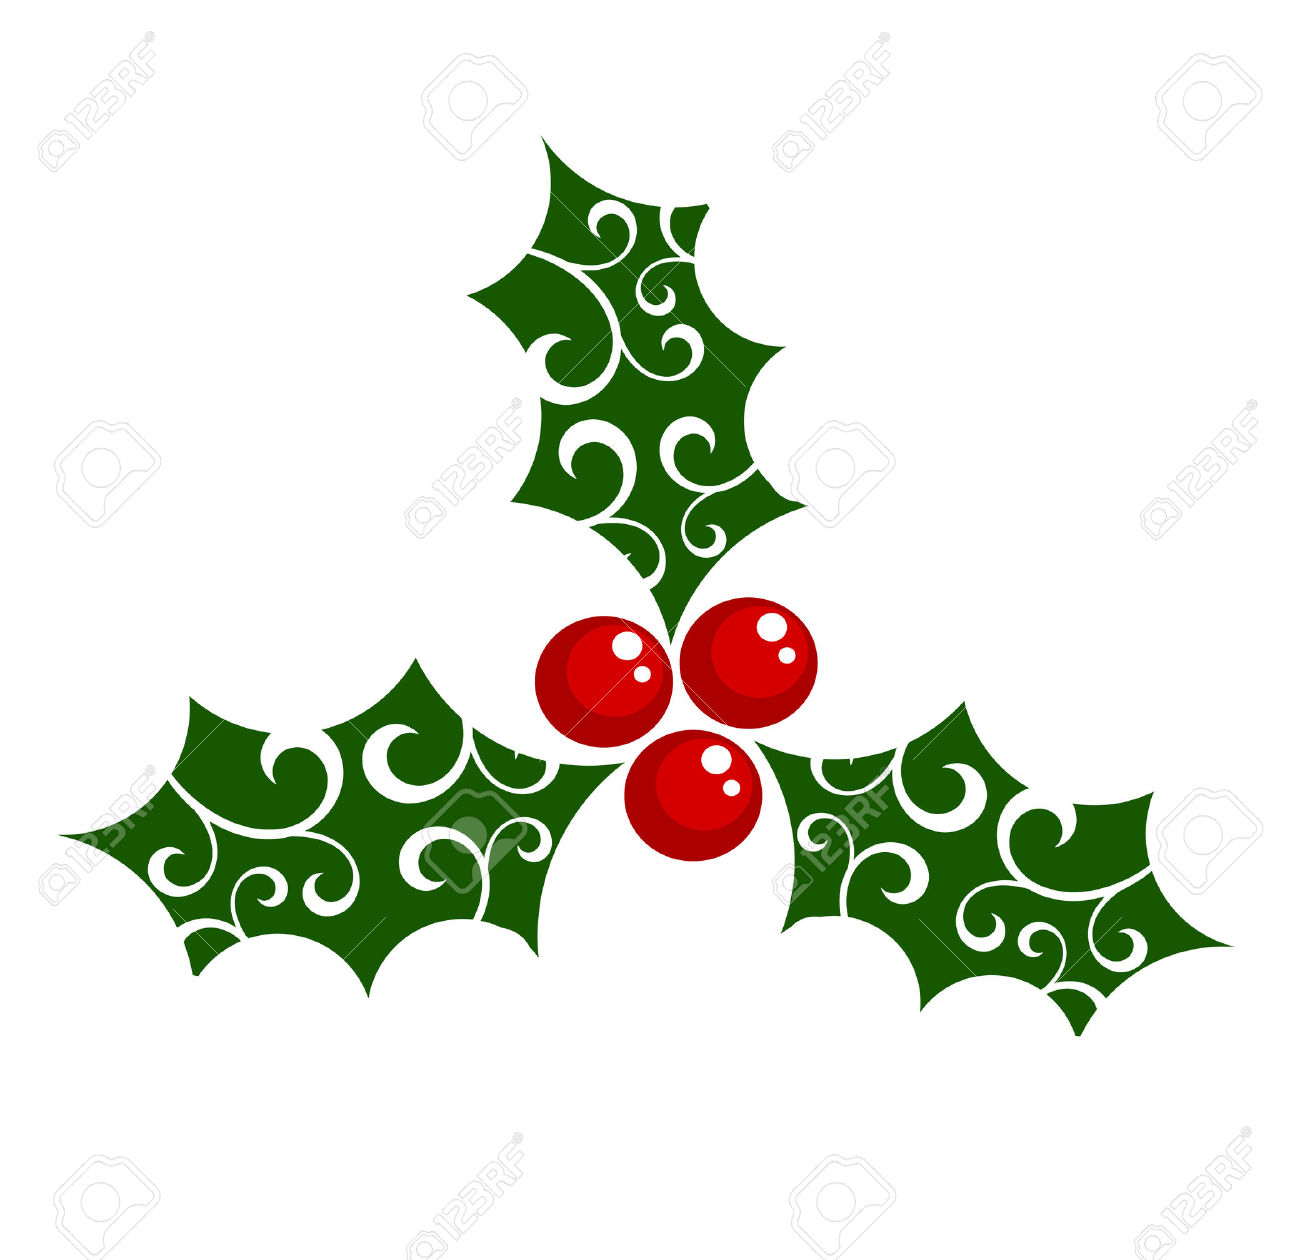 Berries clipart cute. Winter clipground free christmas